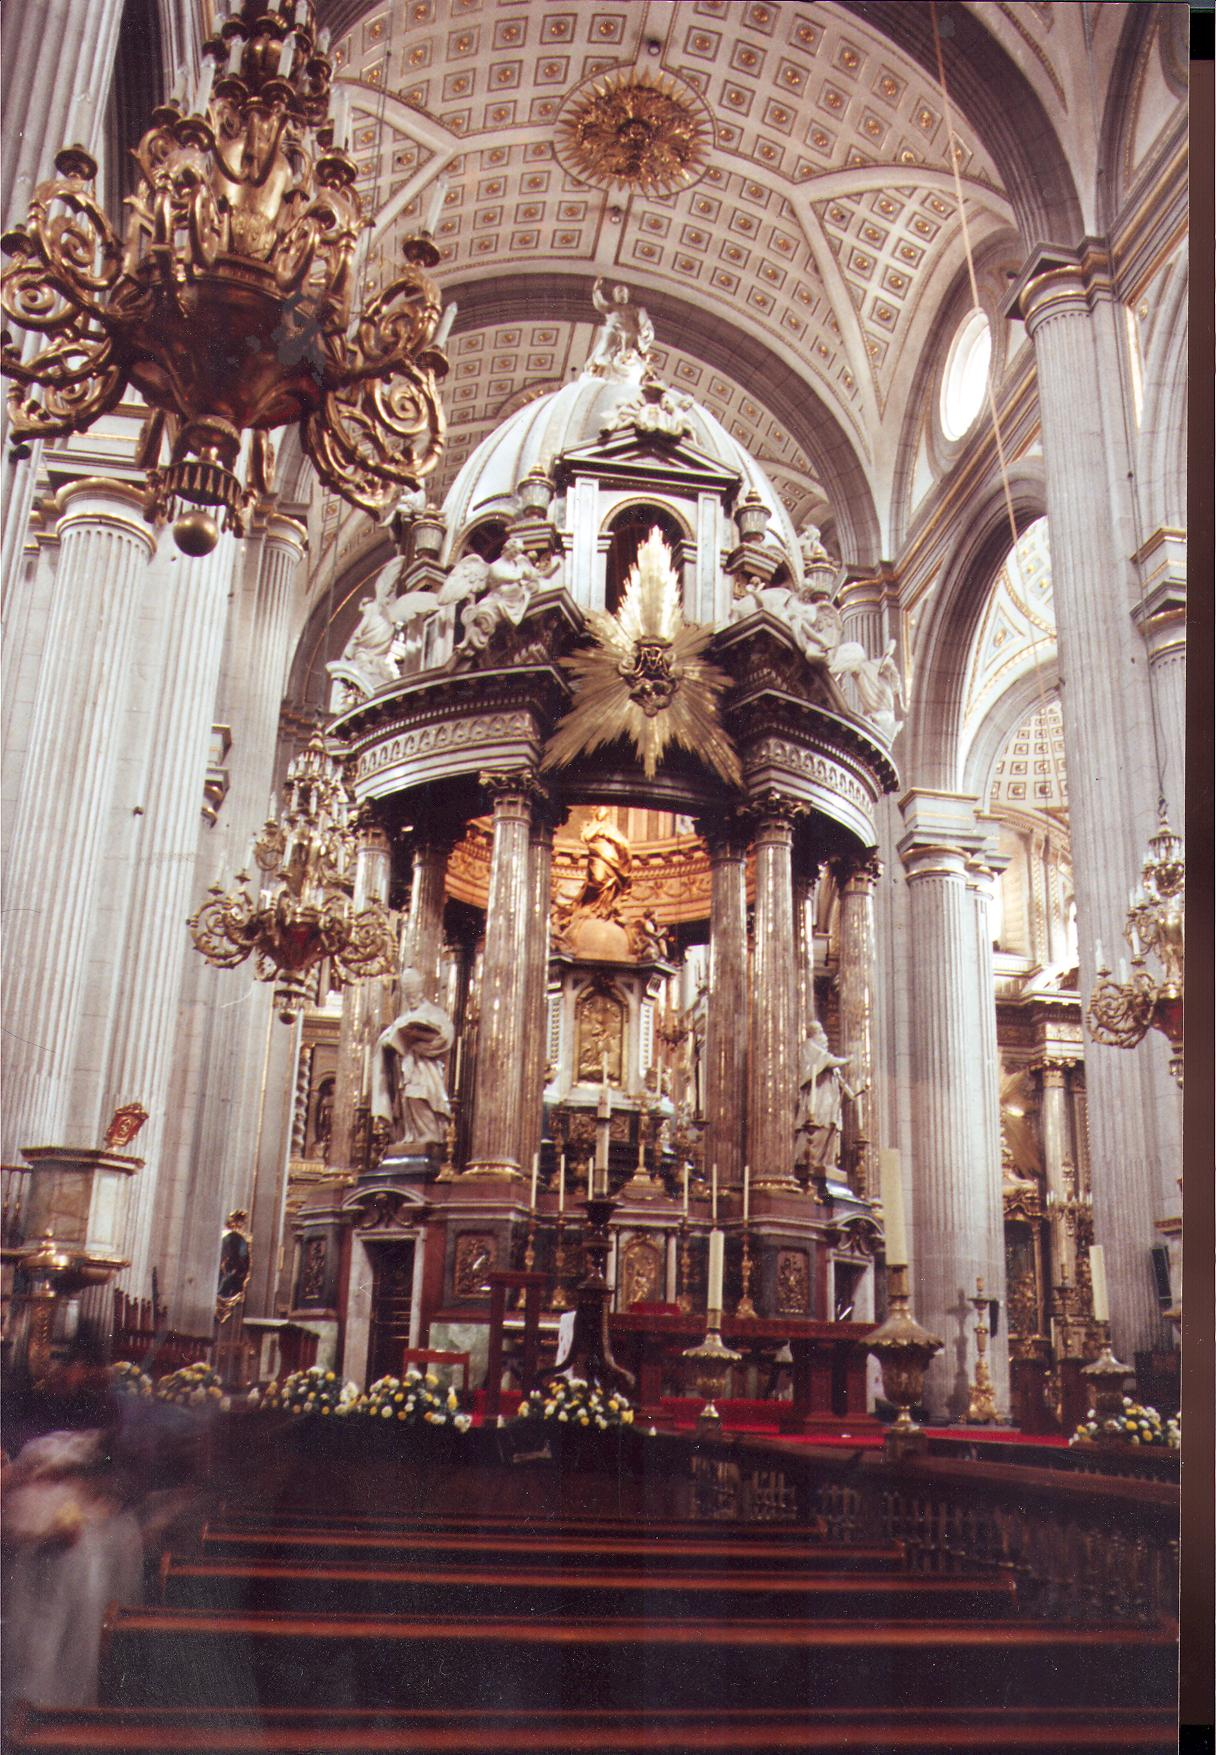 Altar of the Kings